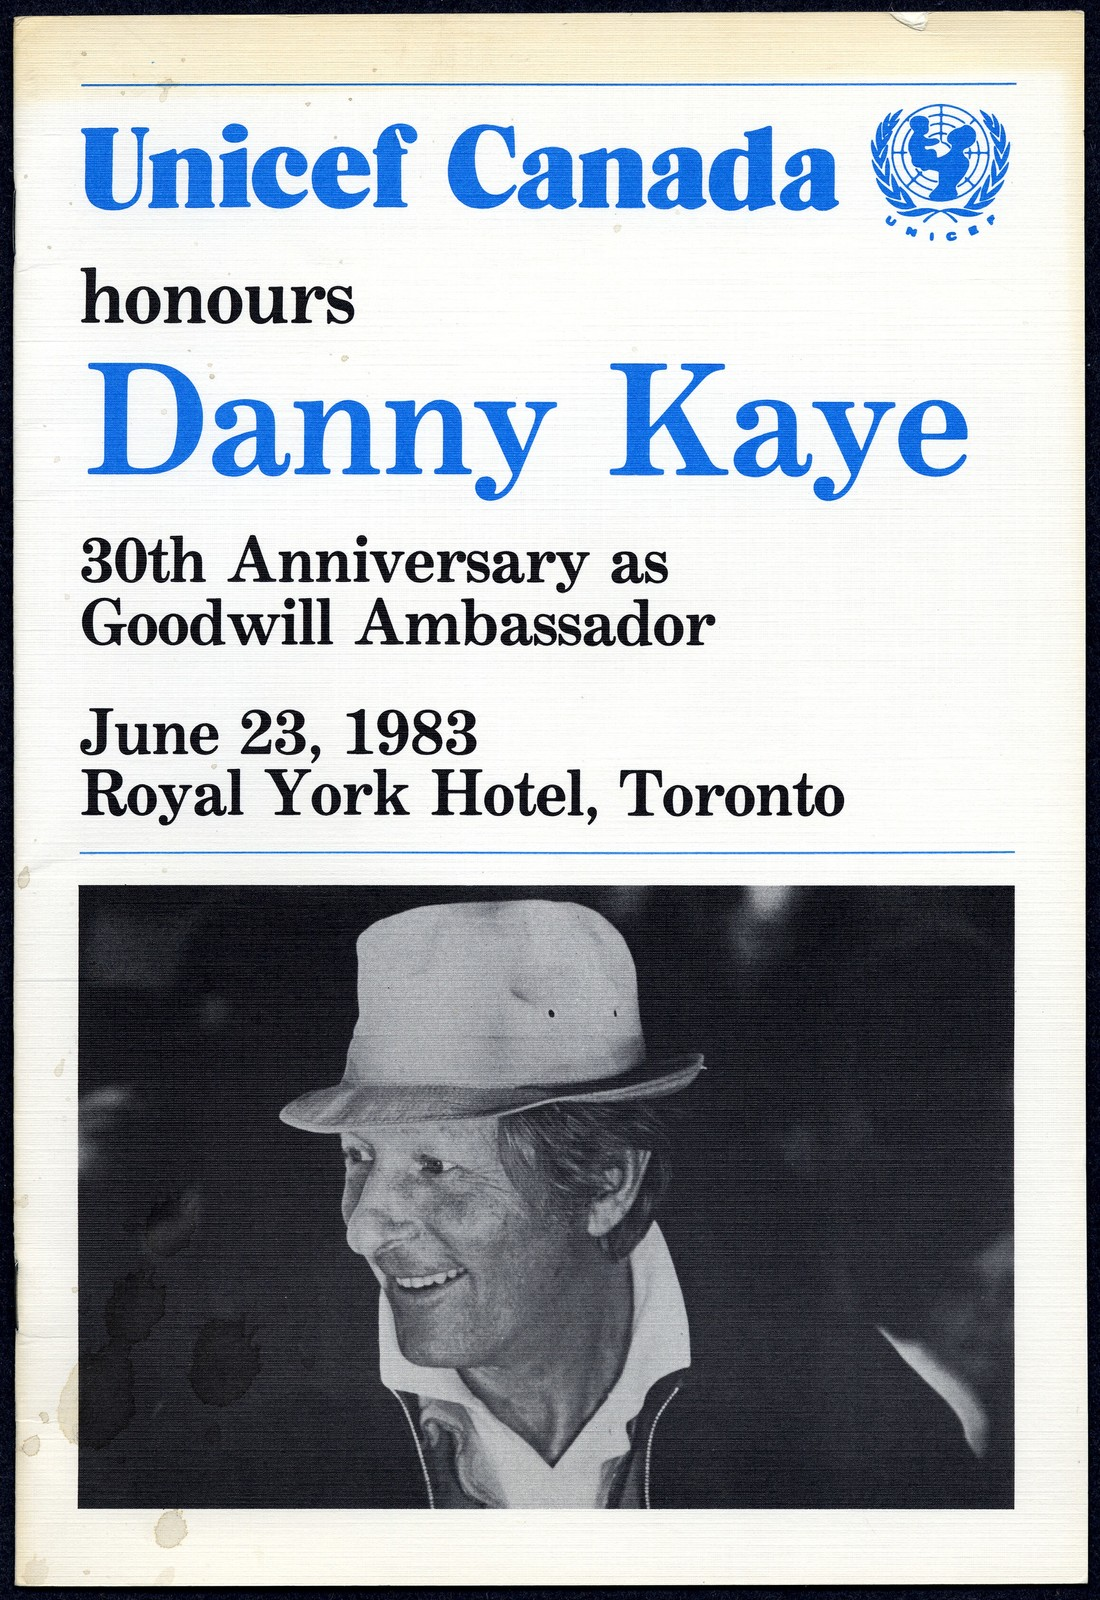 UNICEF Canada honours Danny Kaye, 30th Anniversary as Goodwill Ambassador, June 23, 1983